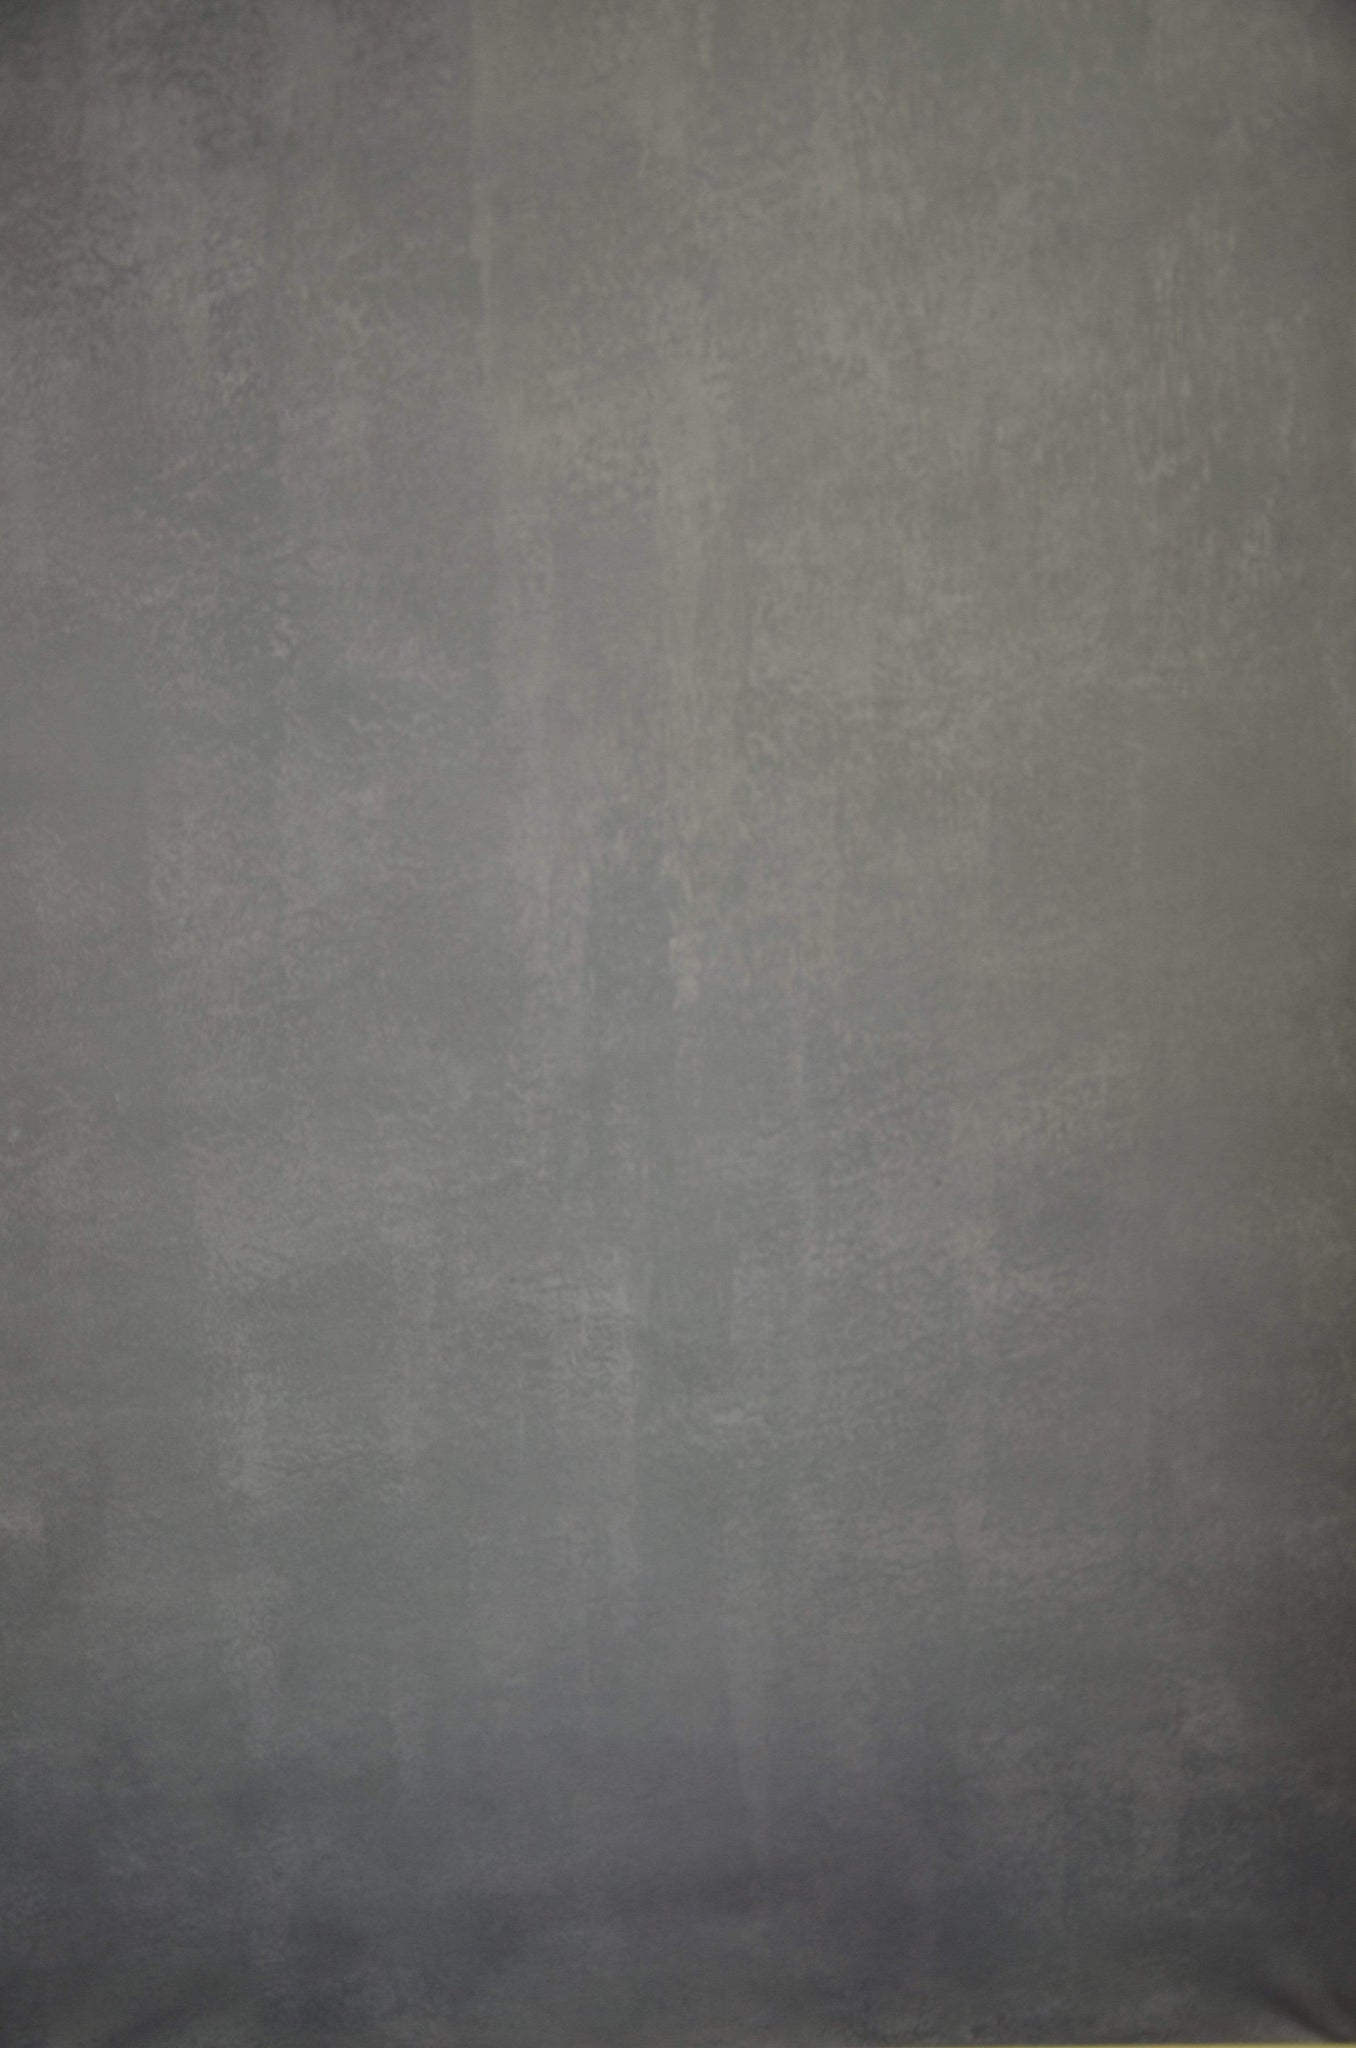 Load image into Gallery viewer, Katebackdrop£ºKate Abstract Texture Cold Tones of Green and Grey Hand Painted Backdrops